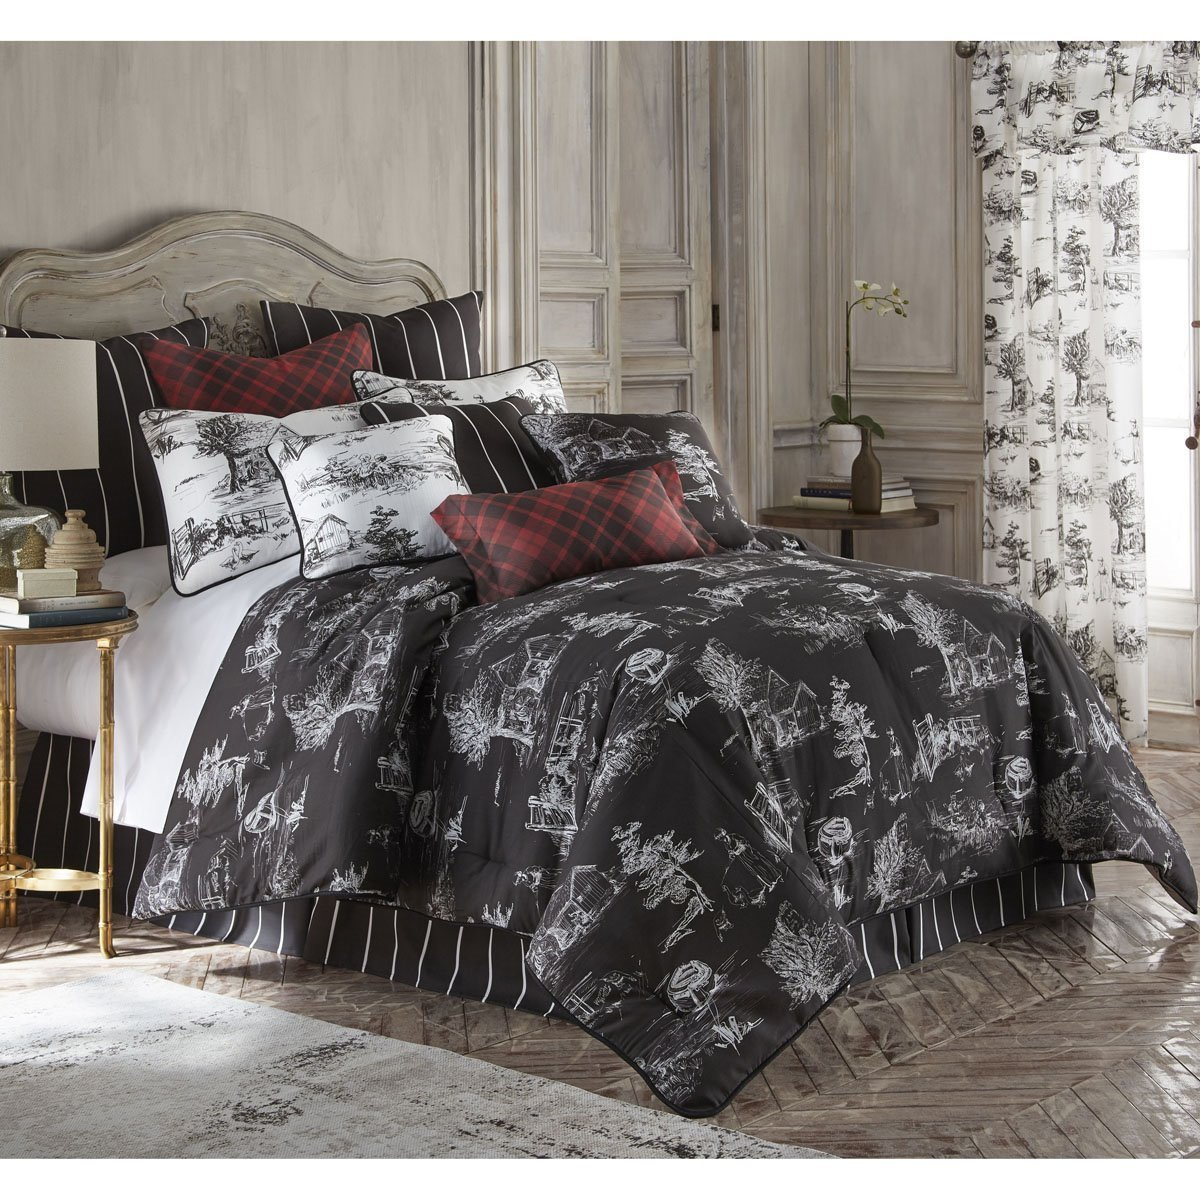 Toile Back In Black Duvet Cover Set Queen Size